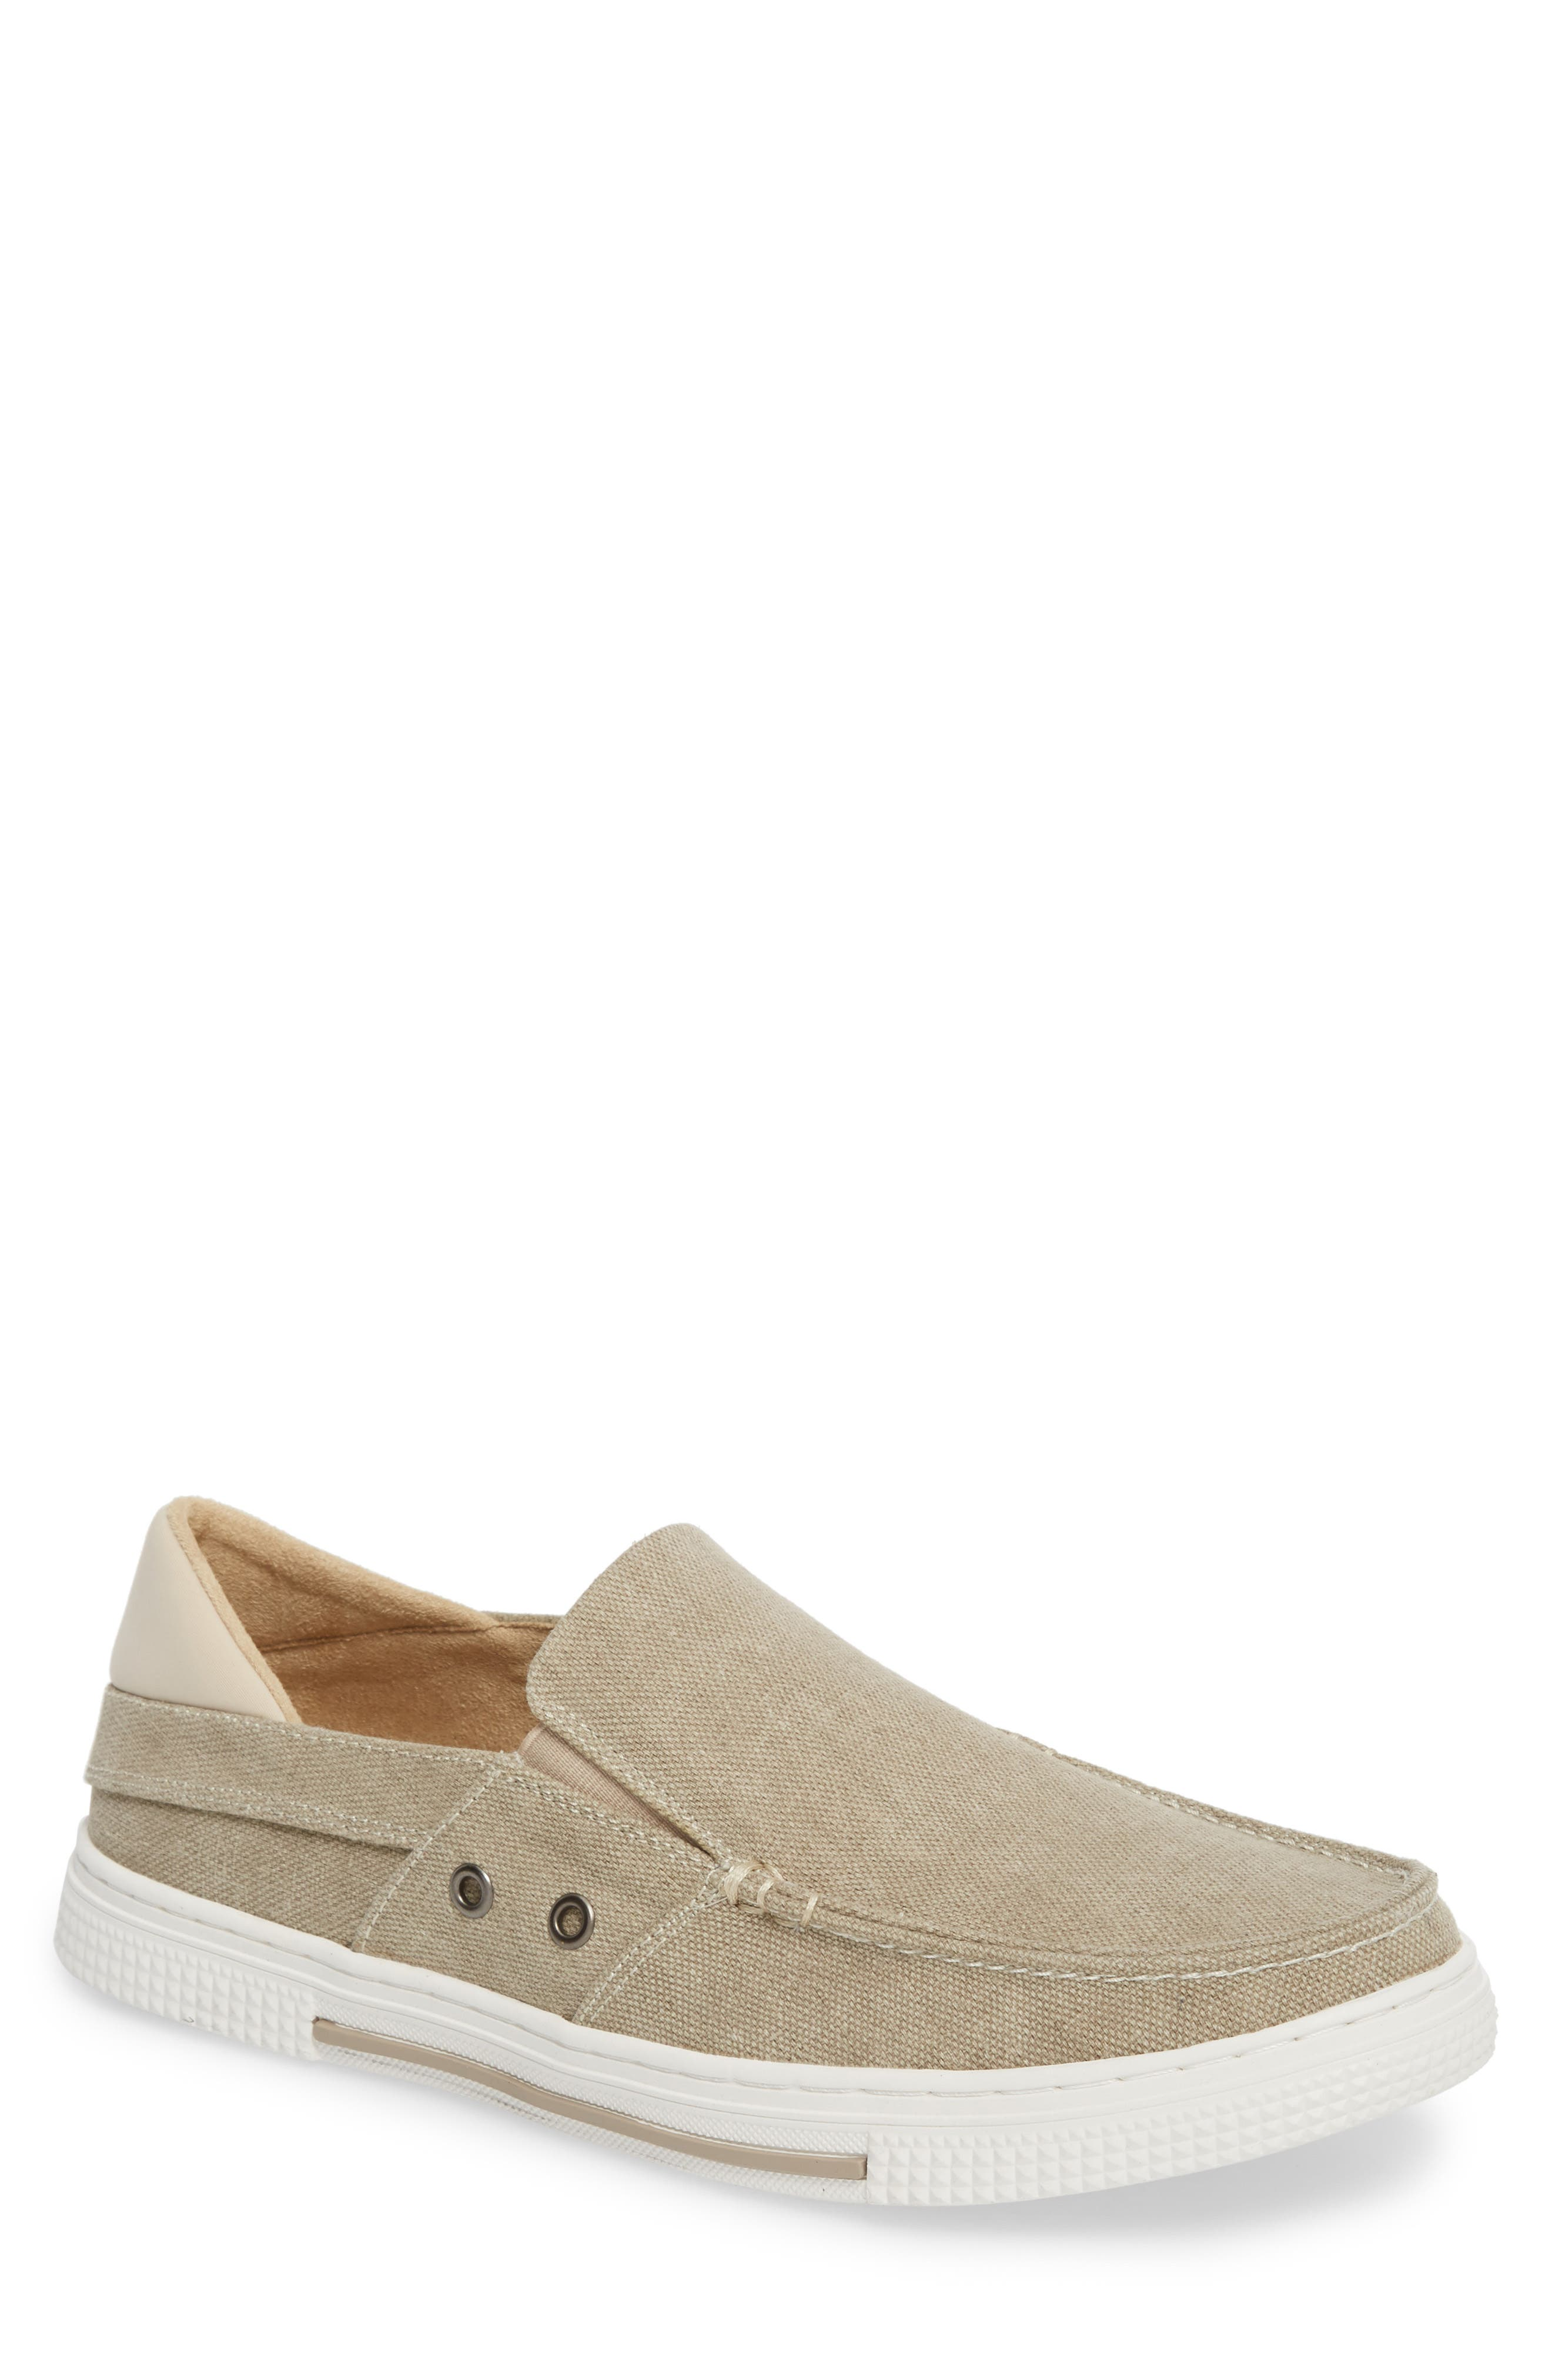 Ankir Boat Slip-On,                             Main thumbnail 1, color,                             SAND